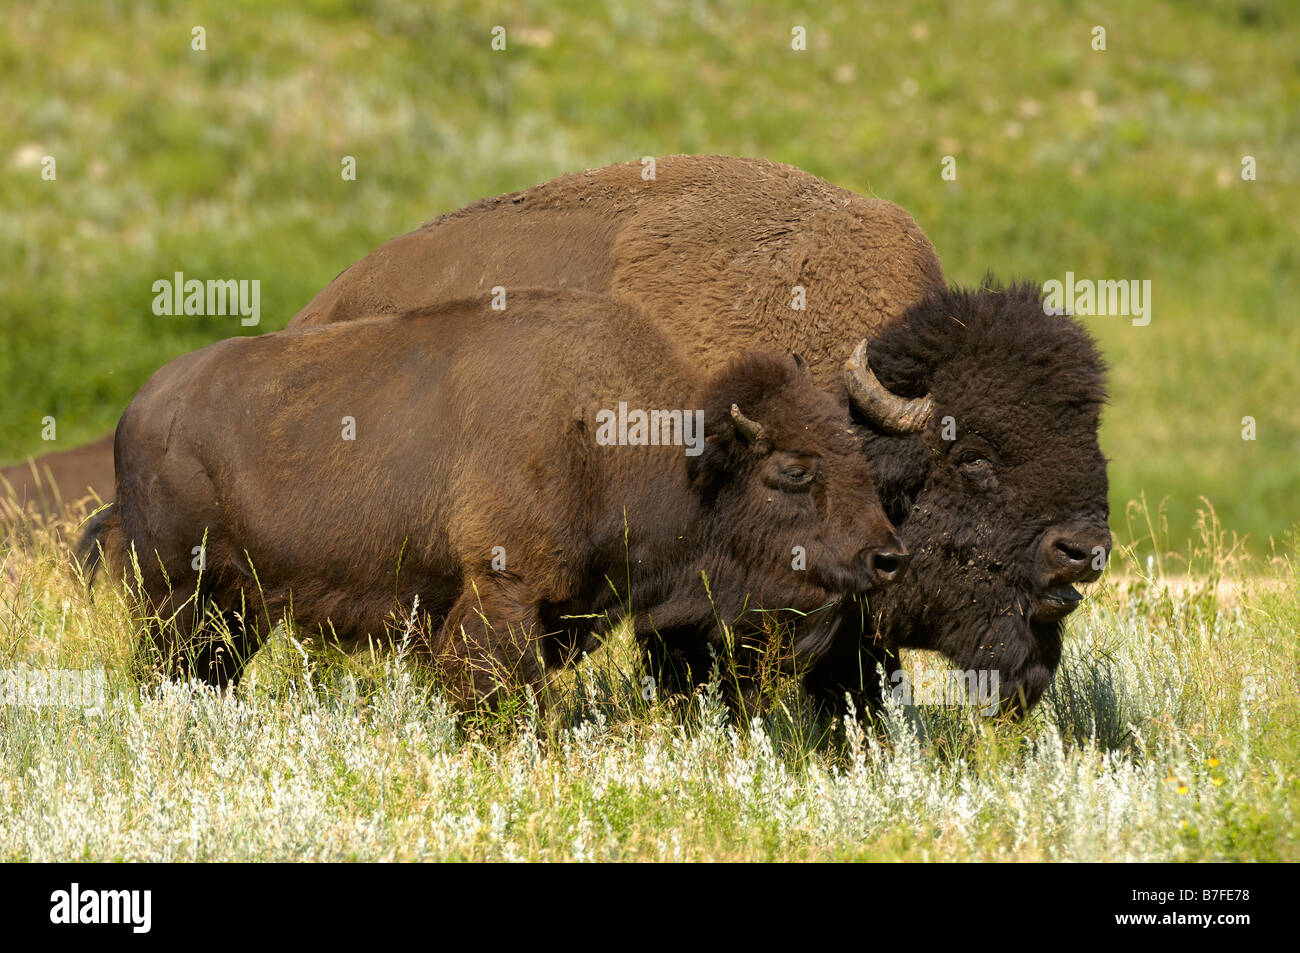 A pair of Bison on the Northern Plains - Stock Image